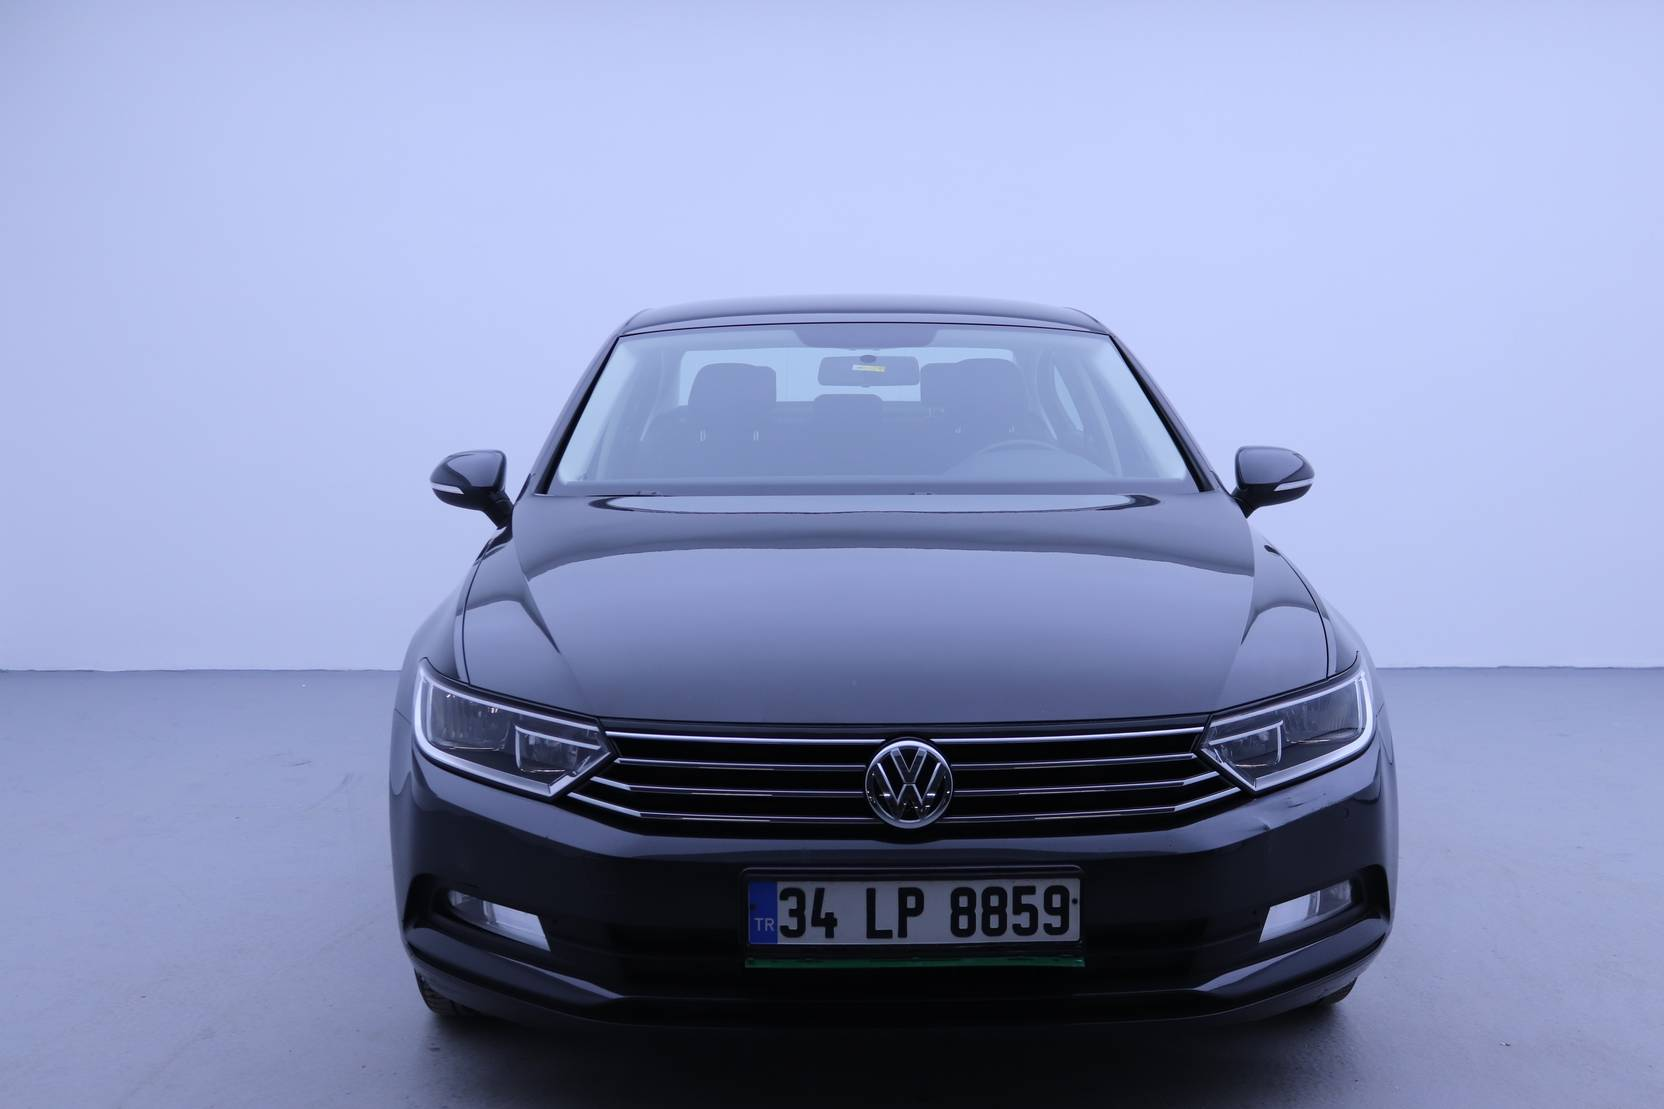 Volkswagen Passat 1.6 TDI (BlueMotion Technology) DSG, Trendline detail2